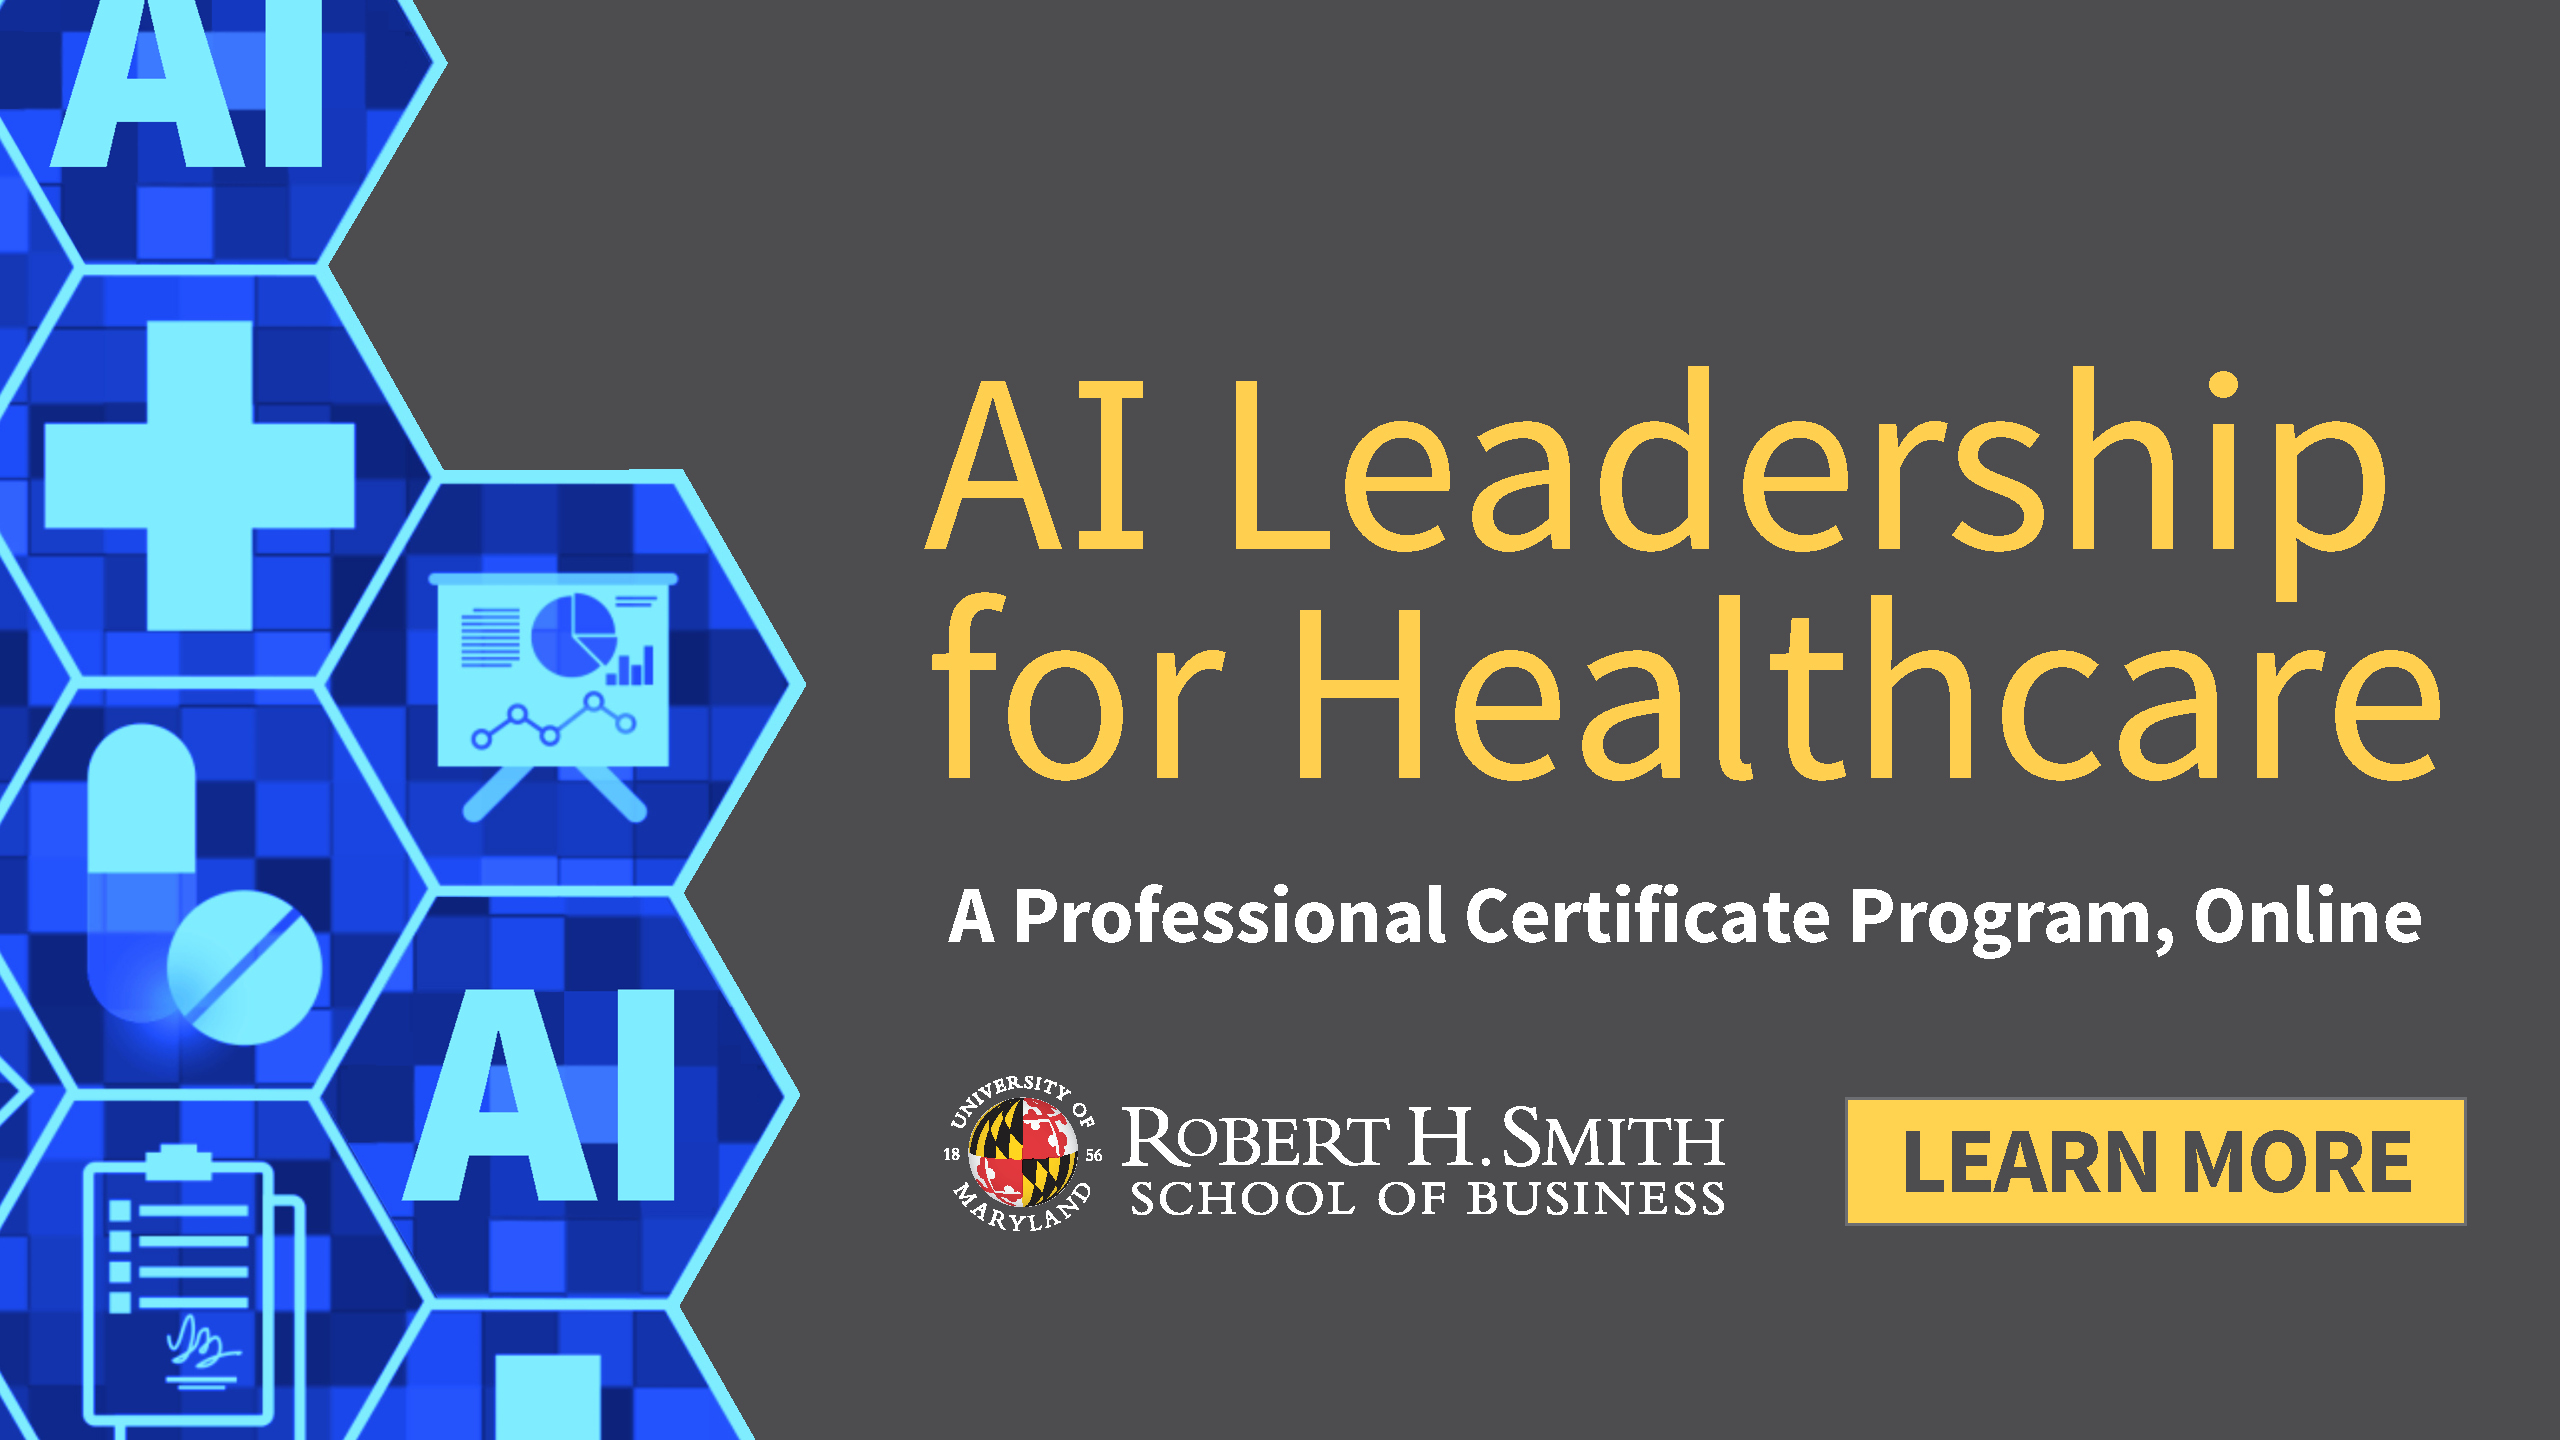 AI Leadership for Healthcare Professional Certificate Program promotional graphic